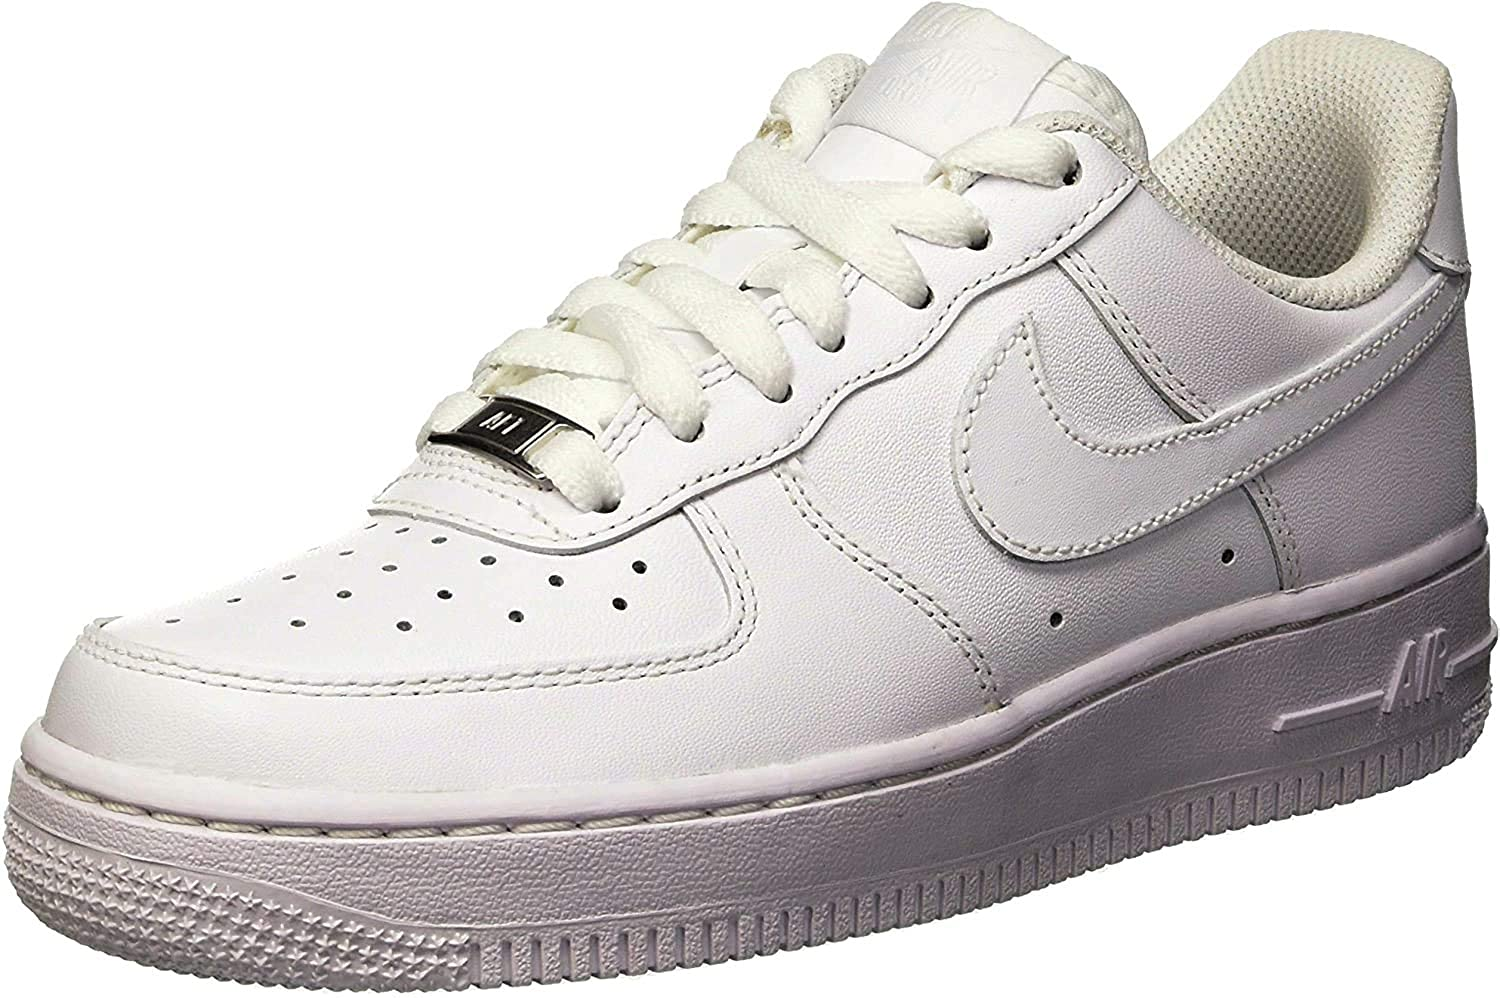 Womens Air Force 1 '07 by NIKE, available on revolve.com for $90 Hailey Baldwin Shoes Exact Product